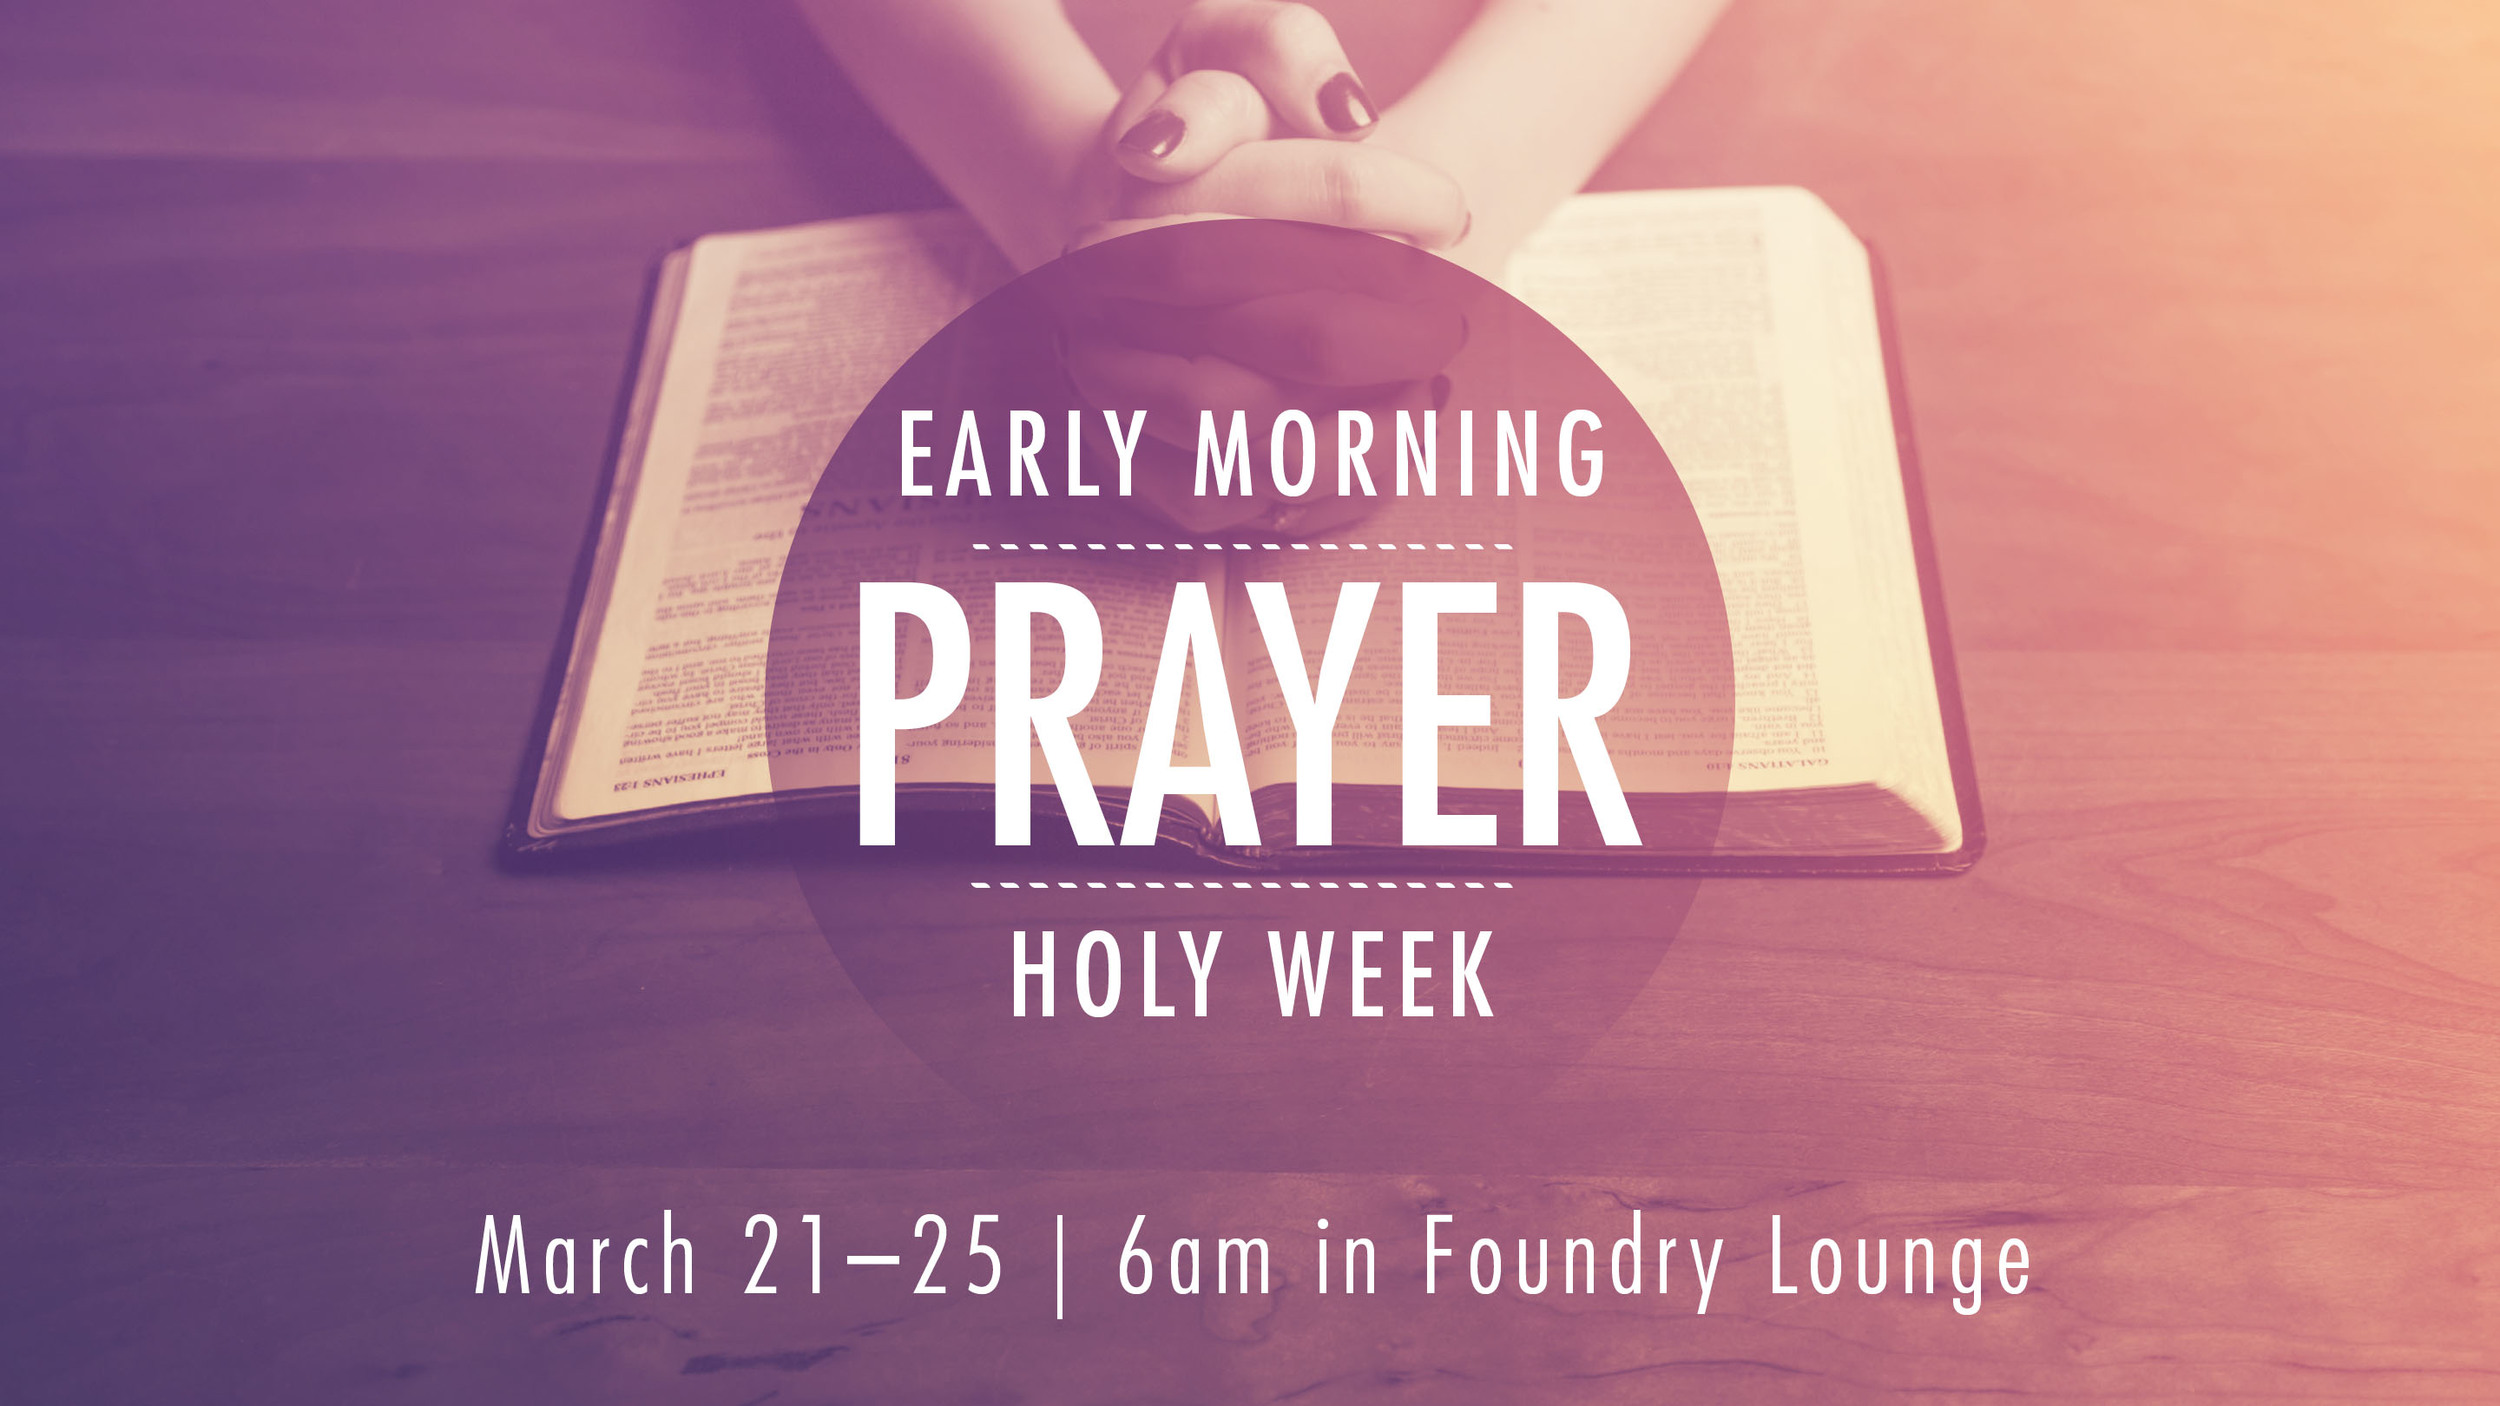 Join us during Holy Week (March 21-25)every weekday at 6am for early morning prayer.